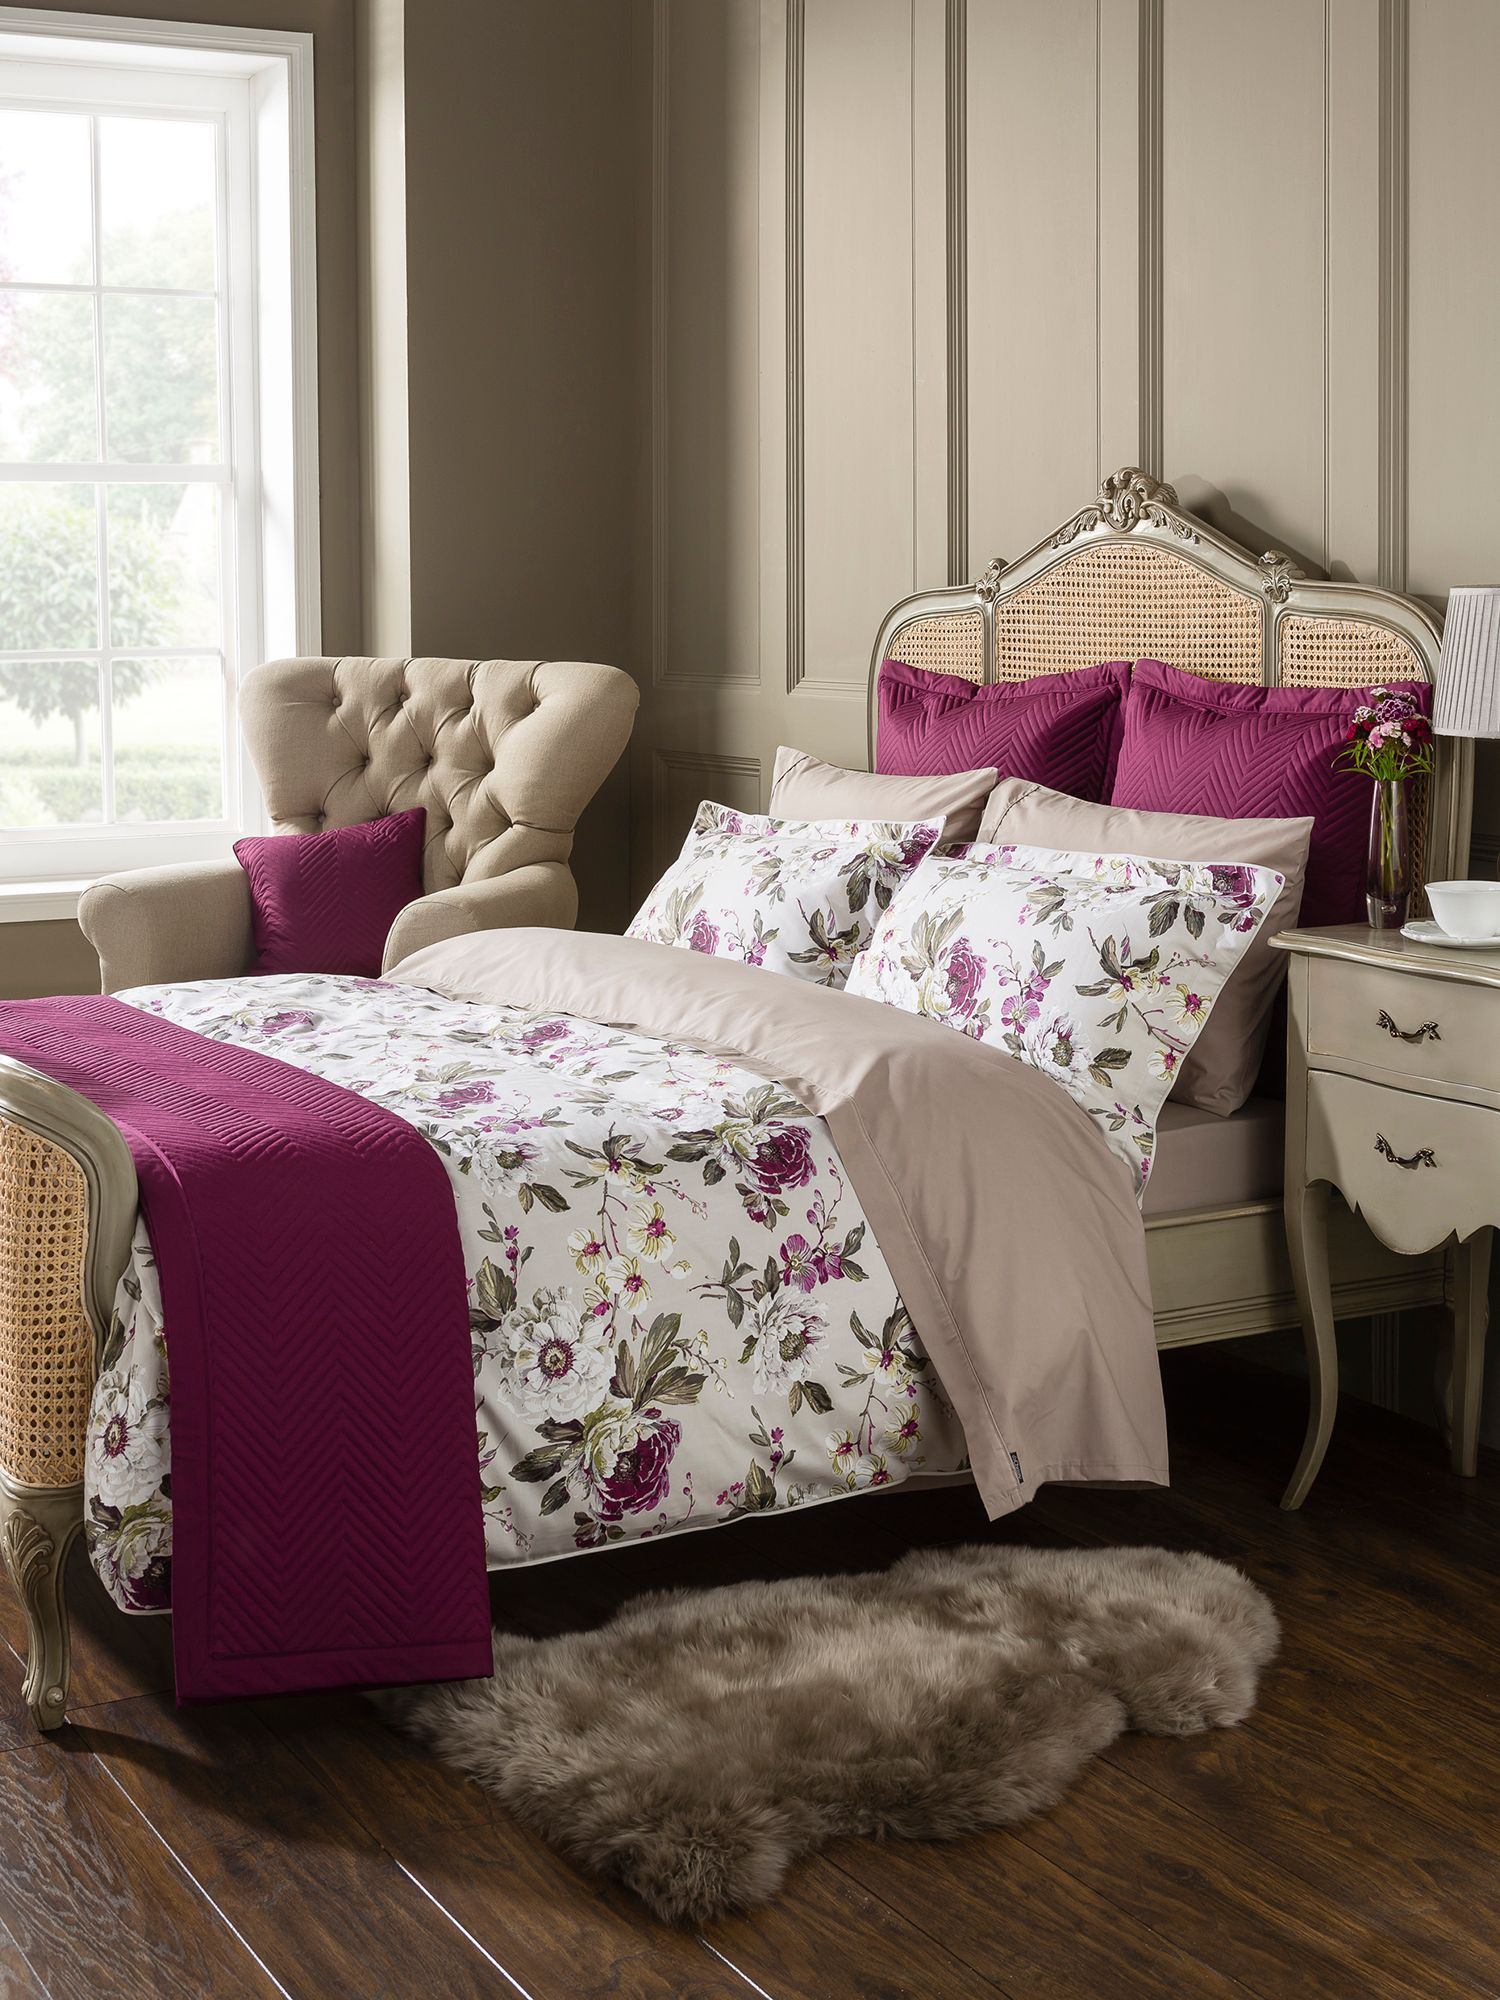 Orchid bed linen in plum